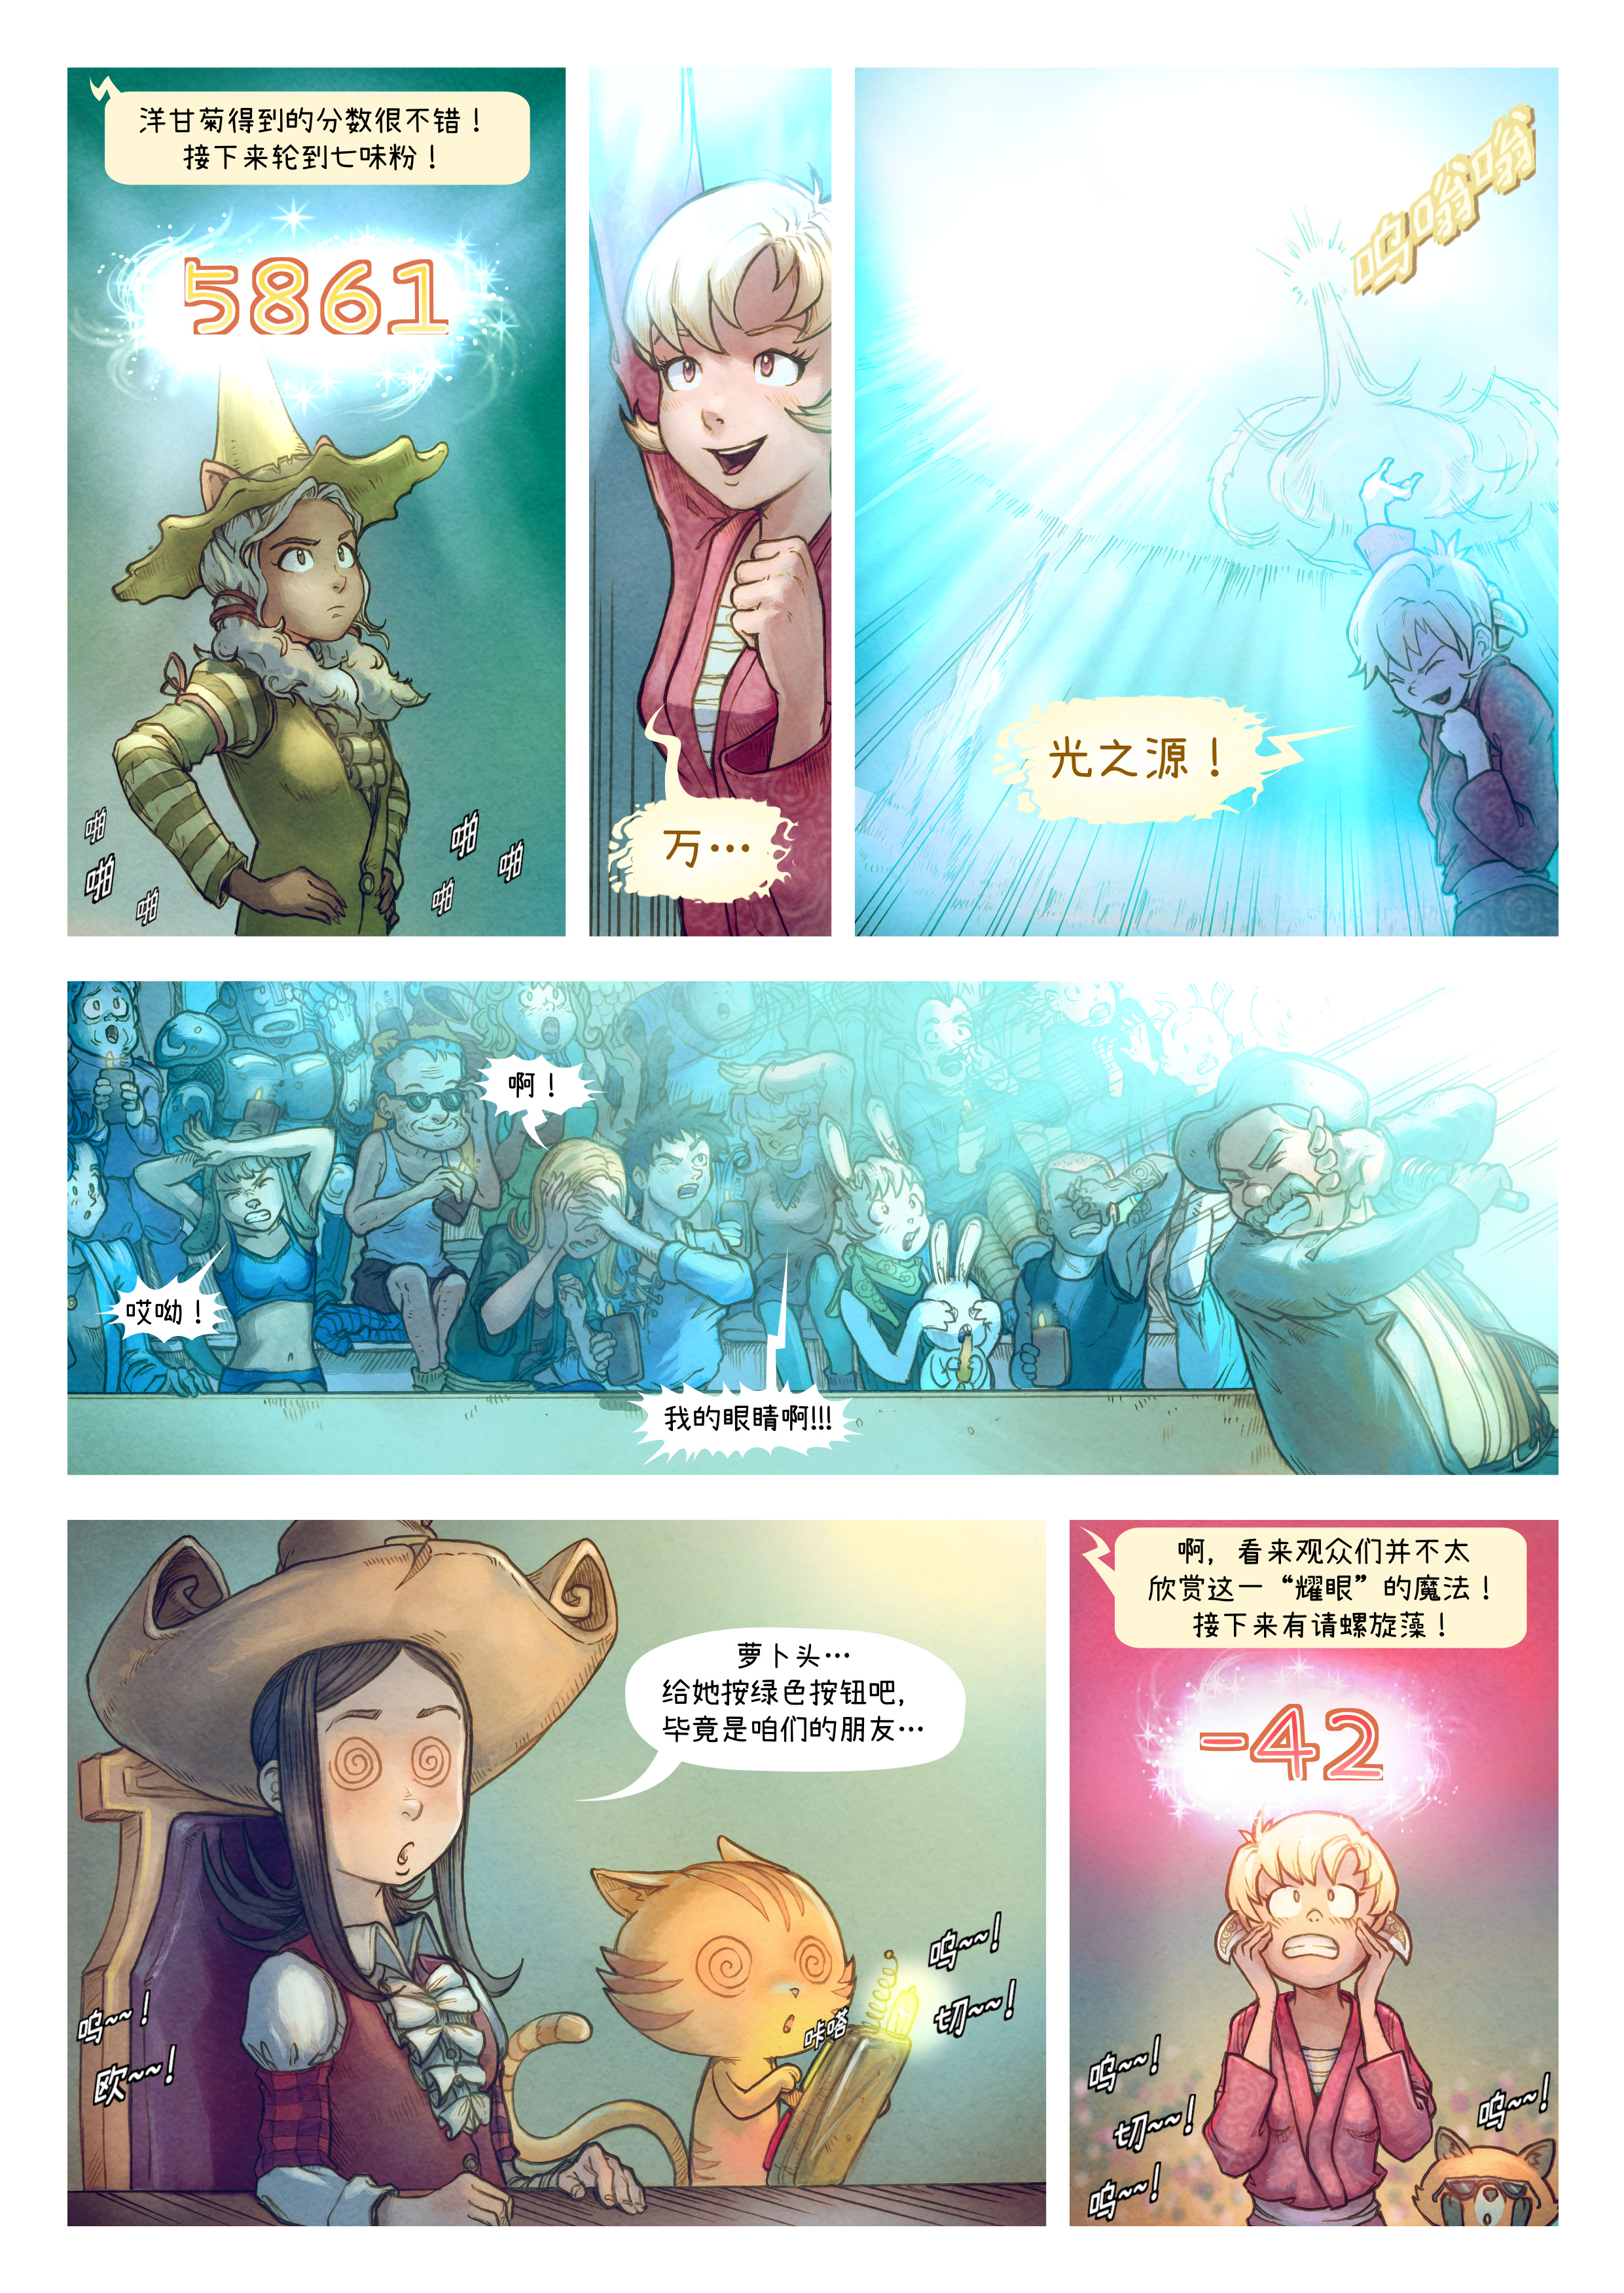 A webcomic page of Pepper&Carrot, 漫画全集 22 [cn], 页面 6